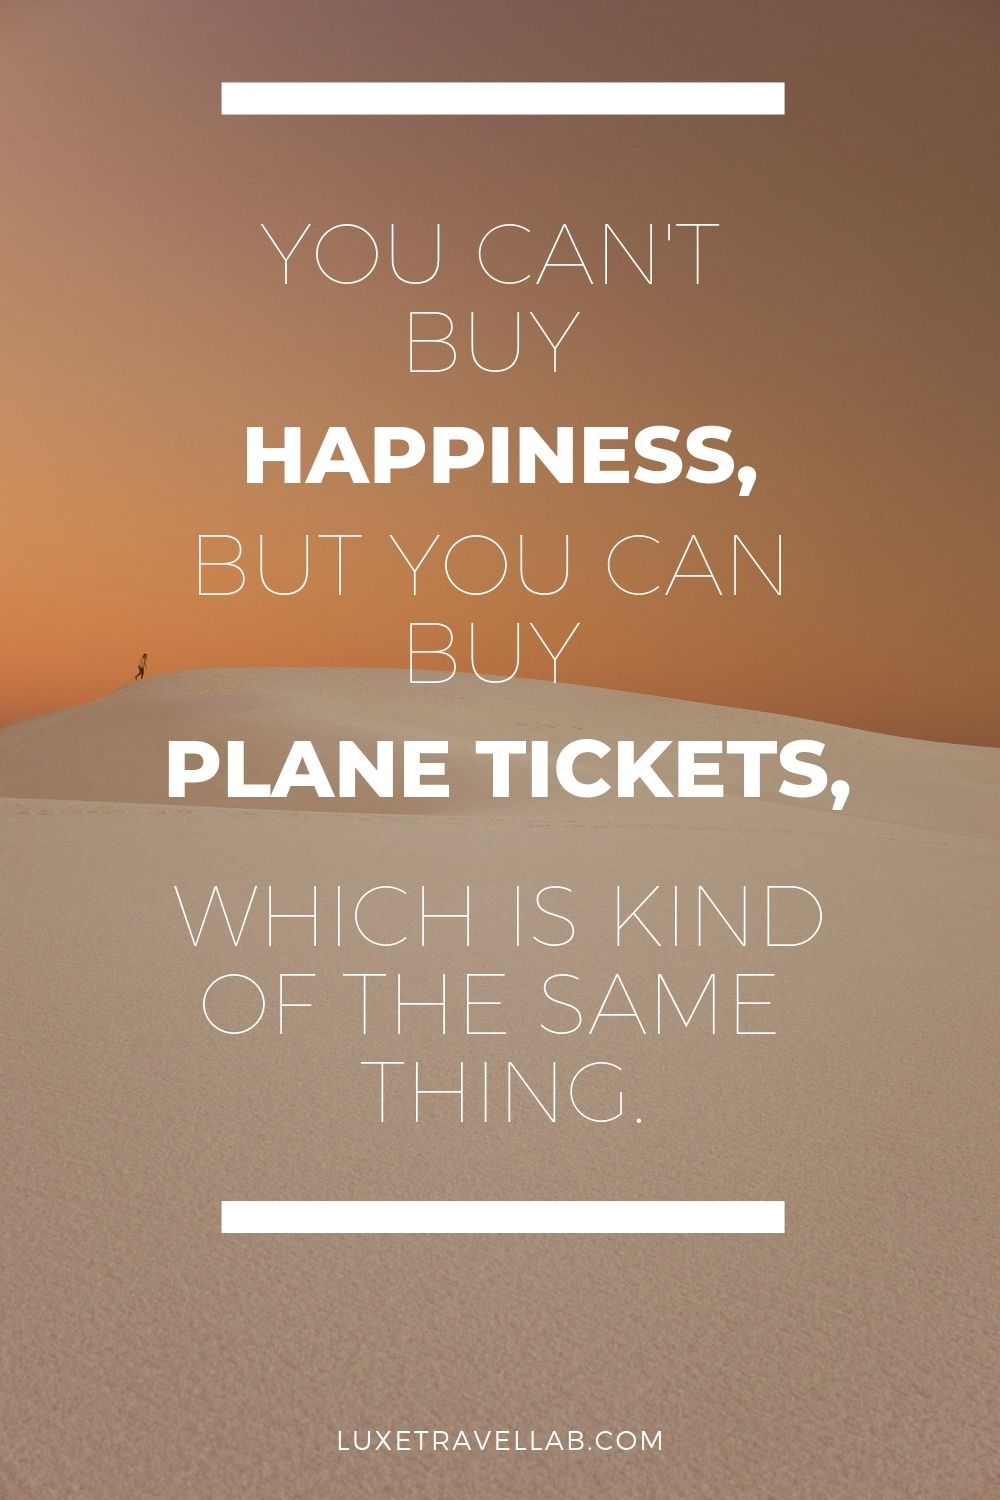 101 Funny Travel Quotes That Will Make You Chuckle Travel Quotes Funny Travel Quotes Famous Travel Quotes